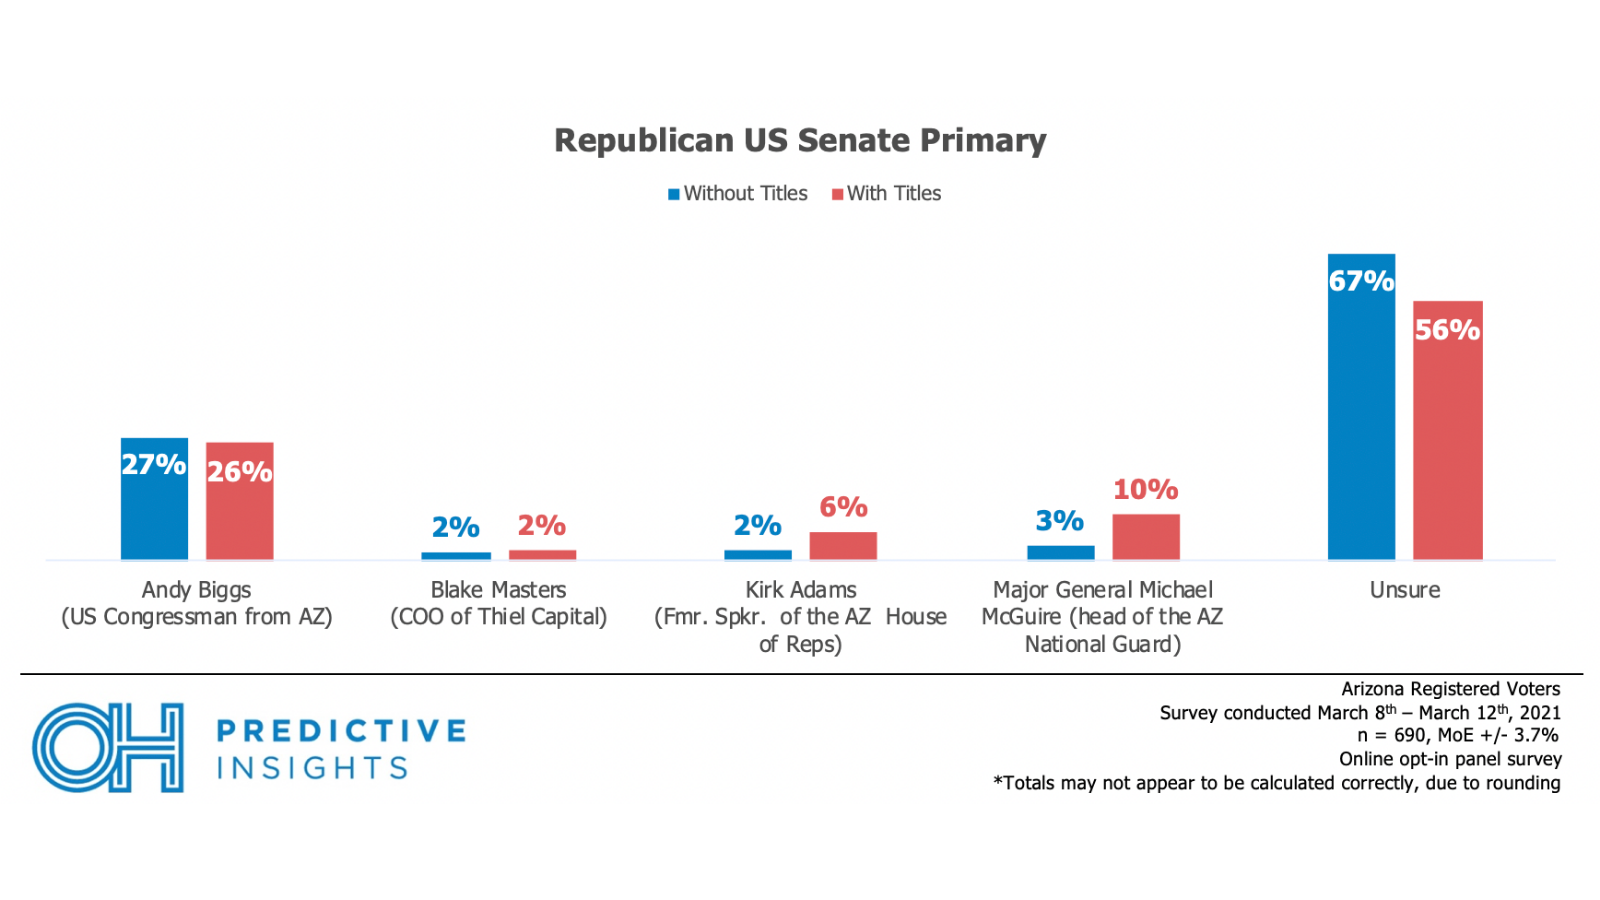 R Senate Primary with/out titles